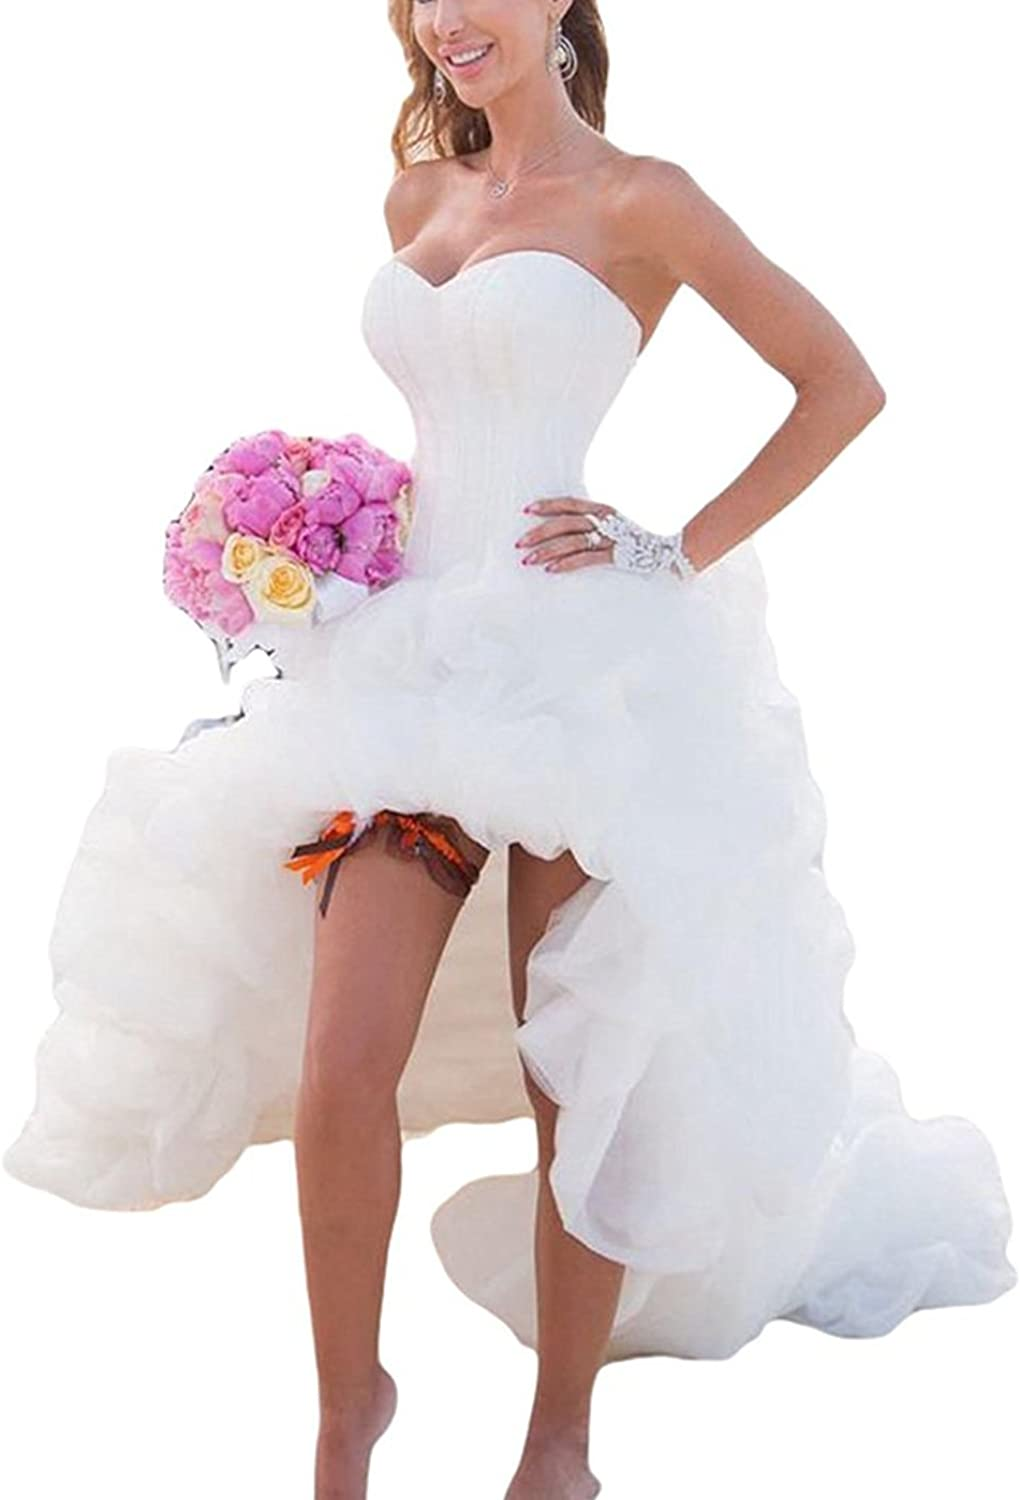 Aries Tuttle White Ivory High Low Beach Wedding Dress Bridal Gown US Size 2 4 +